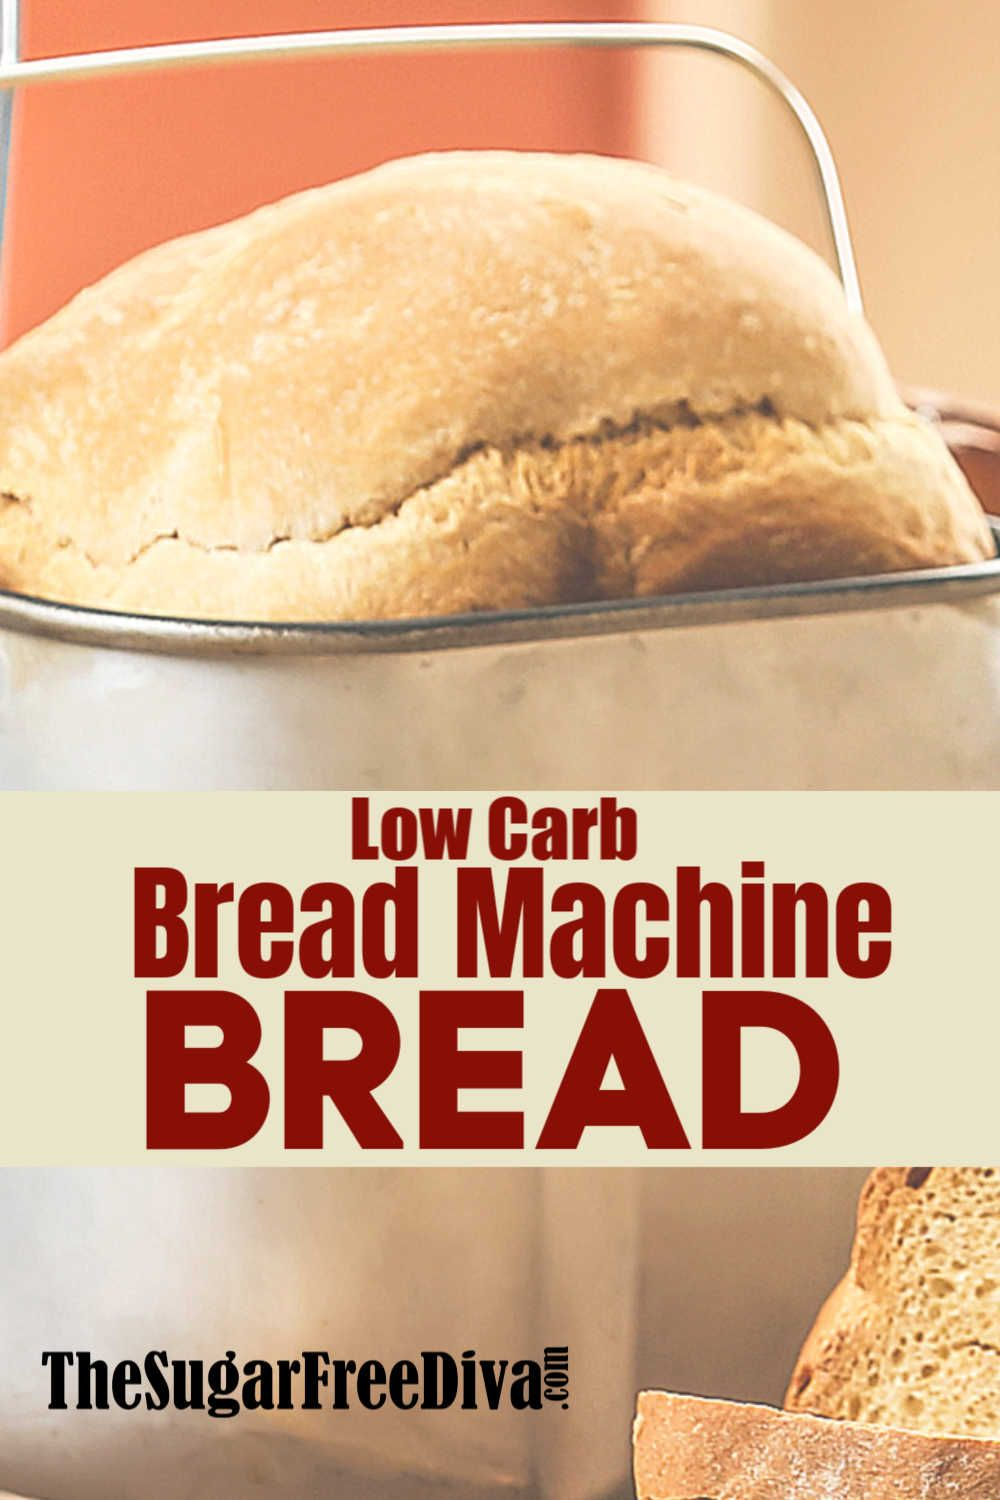 Low Carb Bread Machine Bread Lowcarb Bread Machine